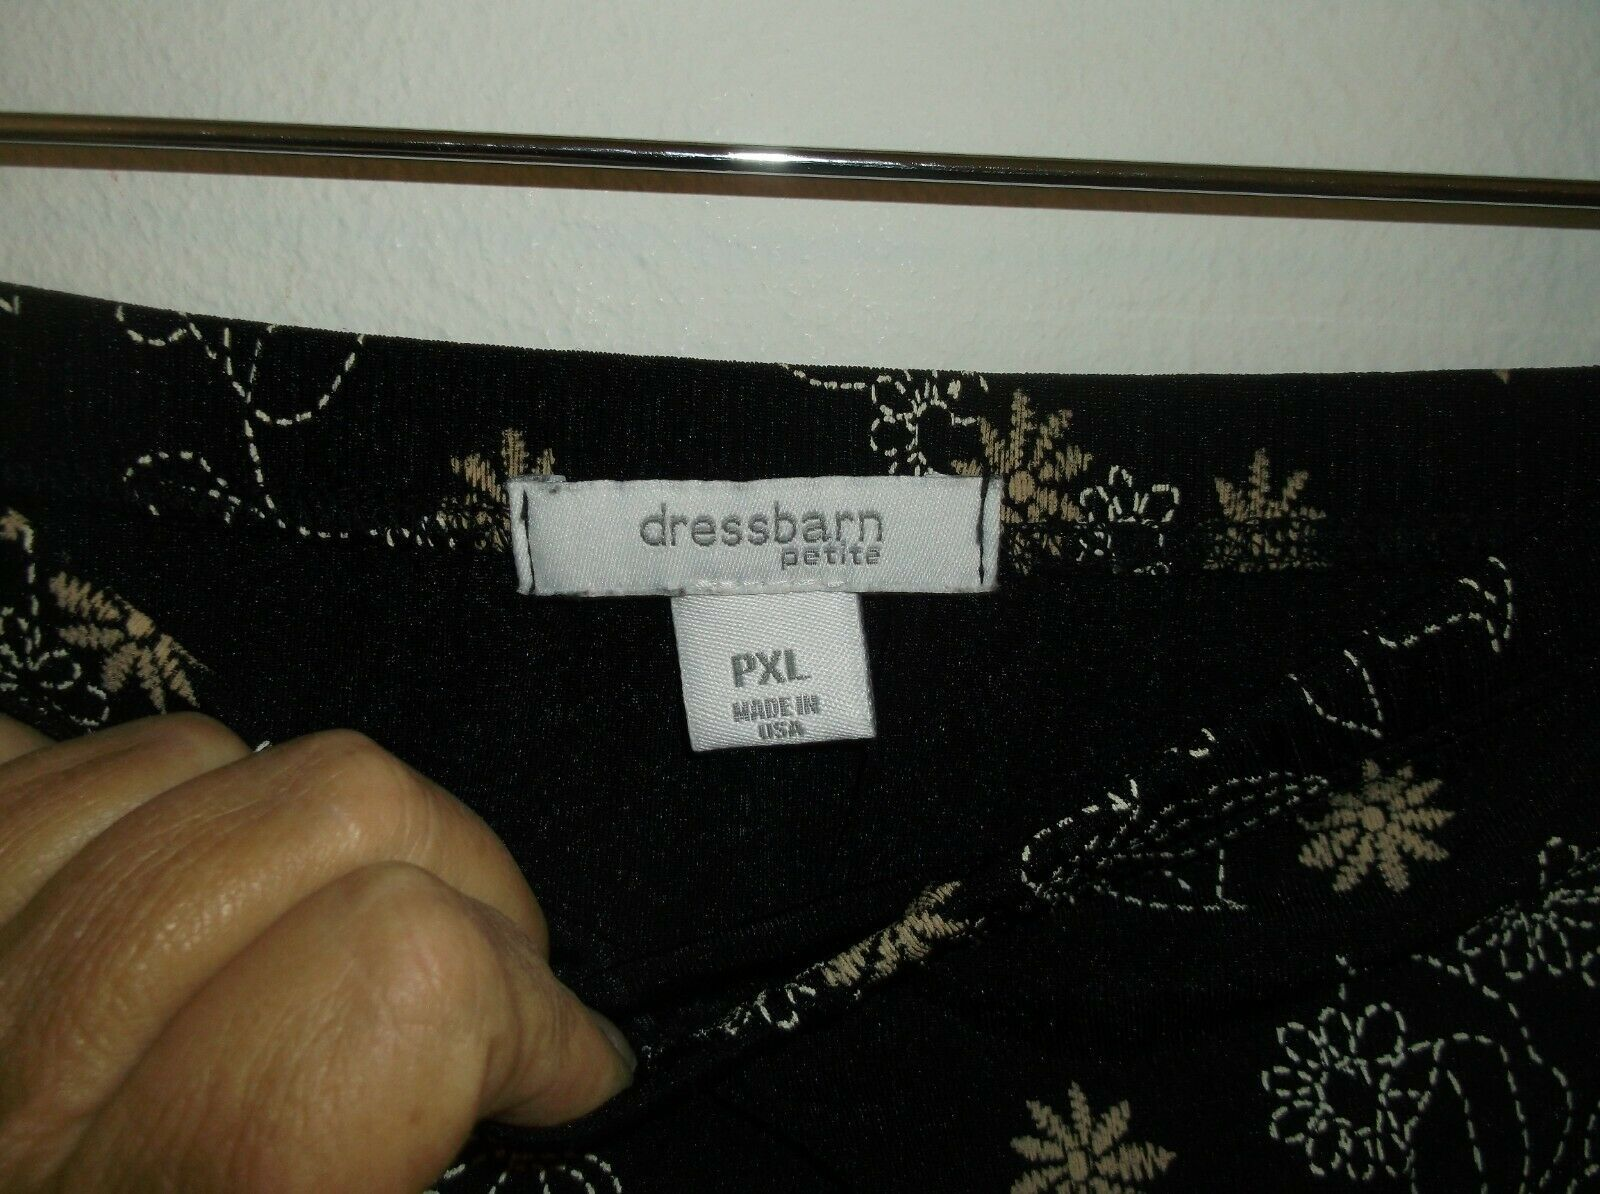 Dressbarn PXL Elastic Waist Skirt Black Background White & Tan Floral Pattern image 4